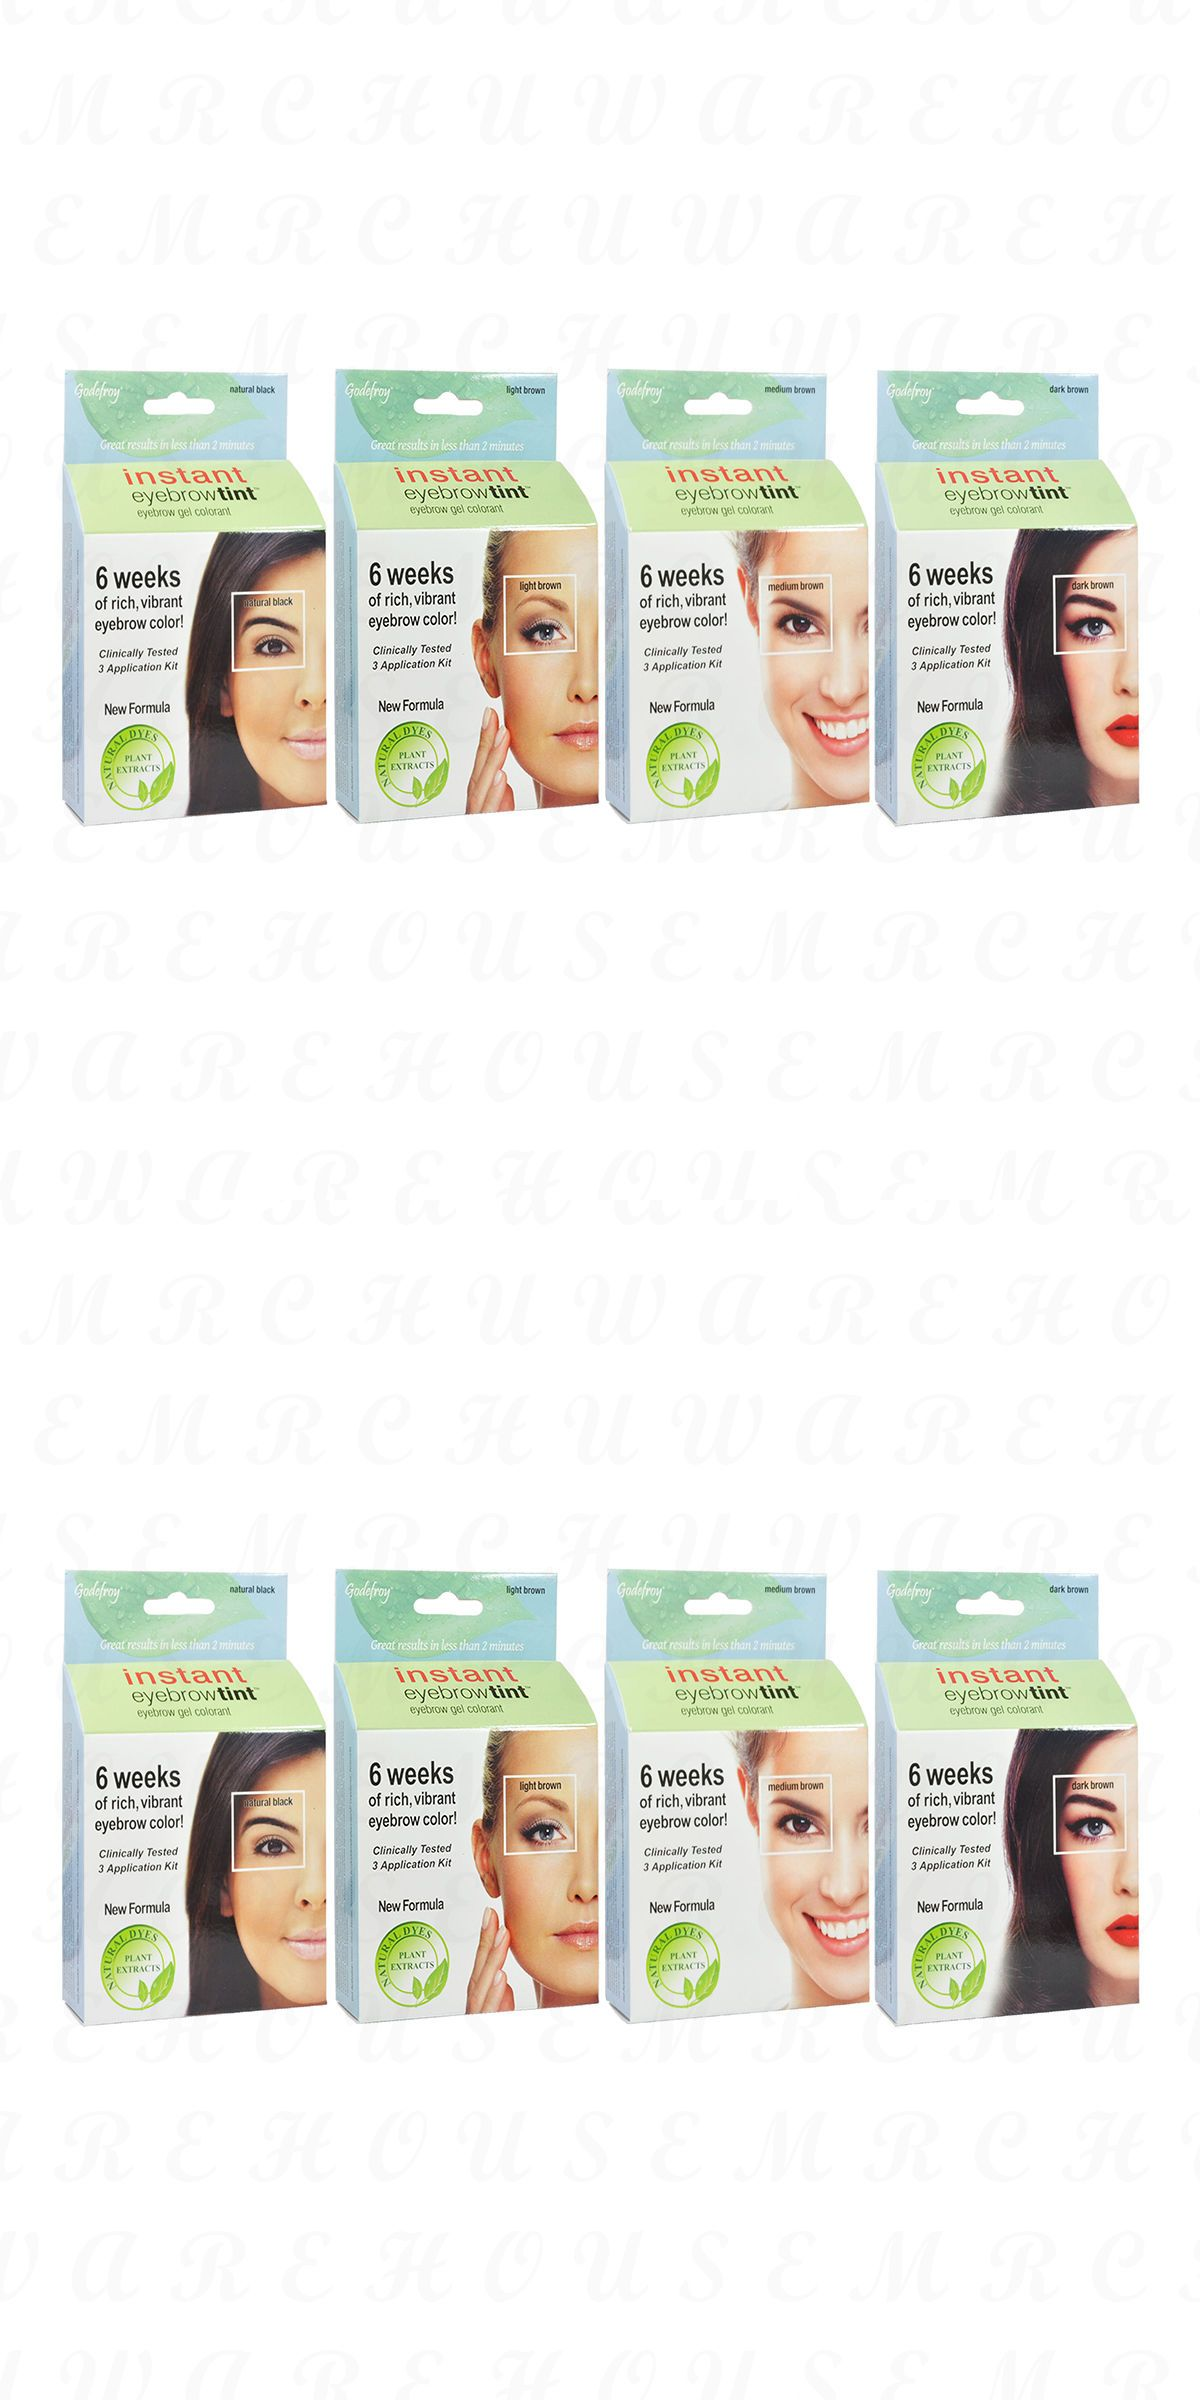 Godefroy Instant Eyebrow Tint Natural Gel Colorant 3 Applications